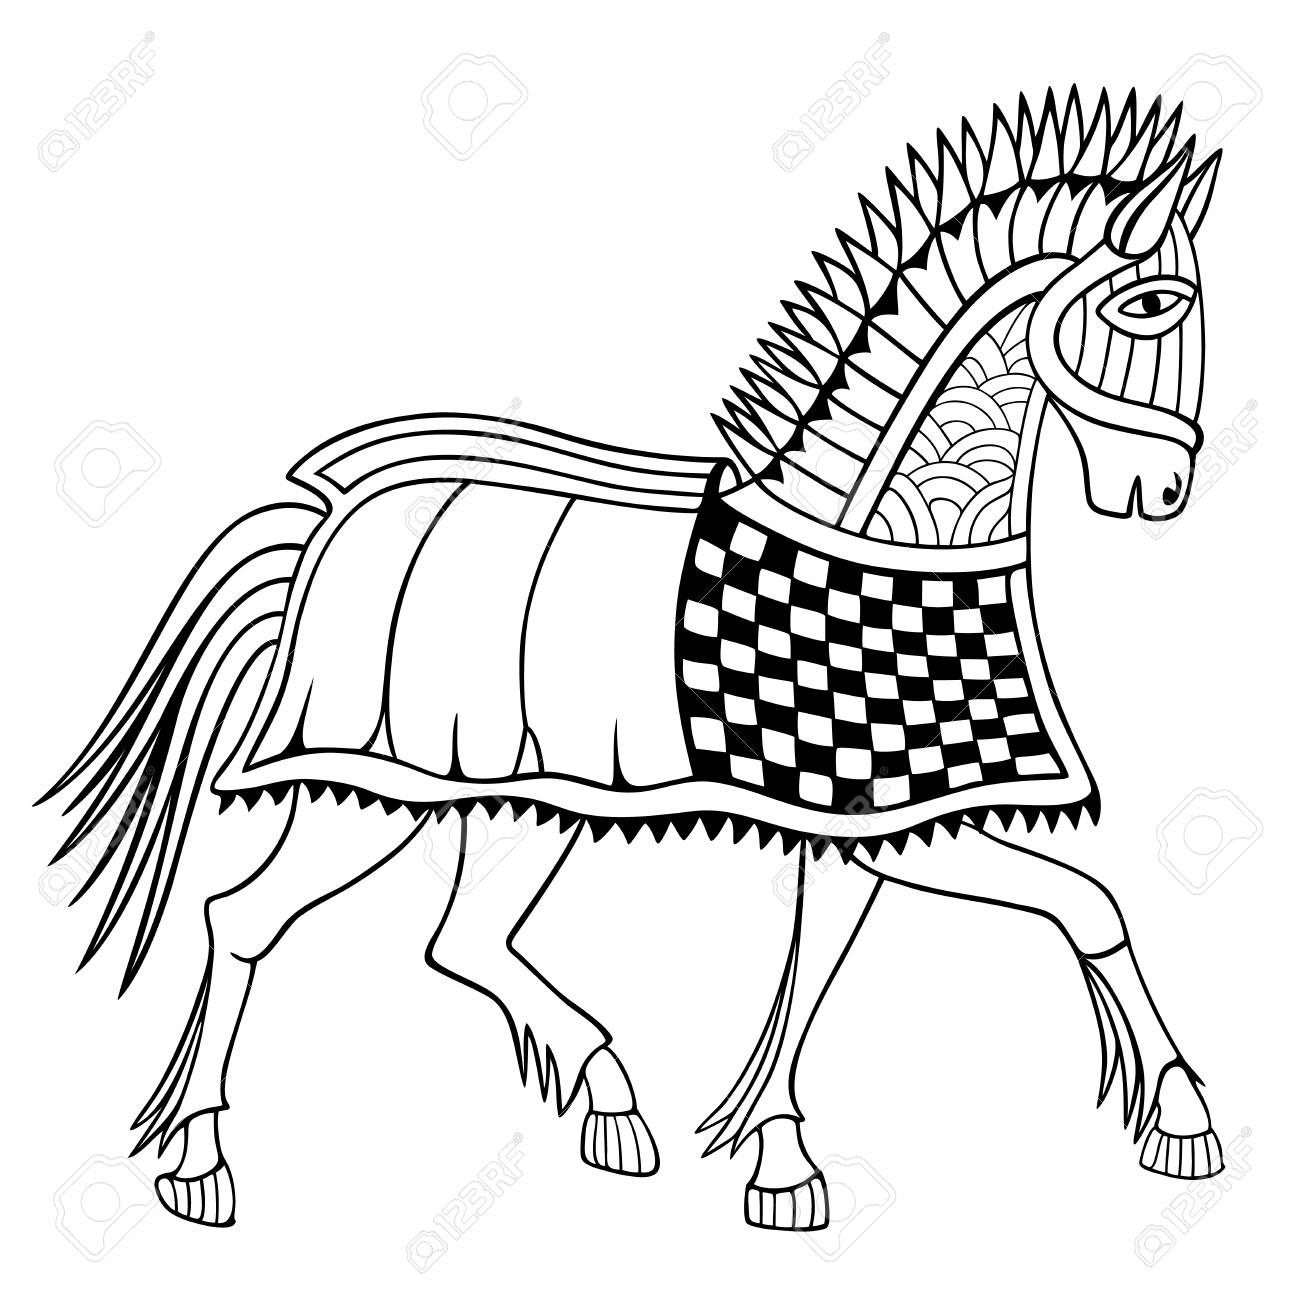 Medieval War Horse Anti Stress Coloring Book Hand Drawn Vector Royalty Free Cliparts Vectors And Stock Illustration Image 95510027